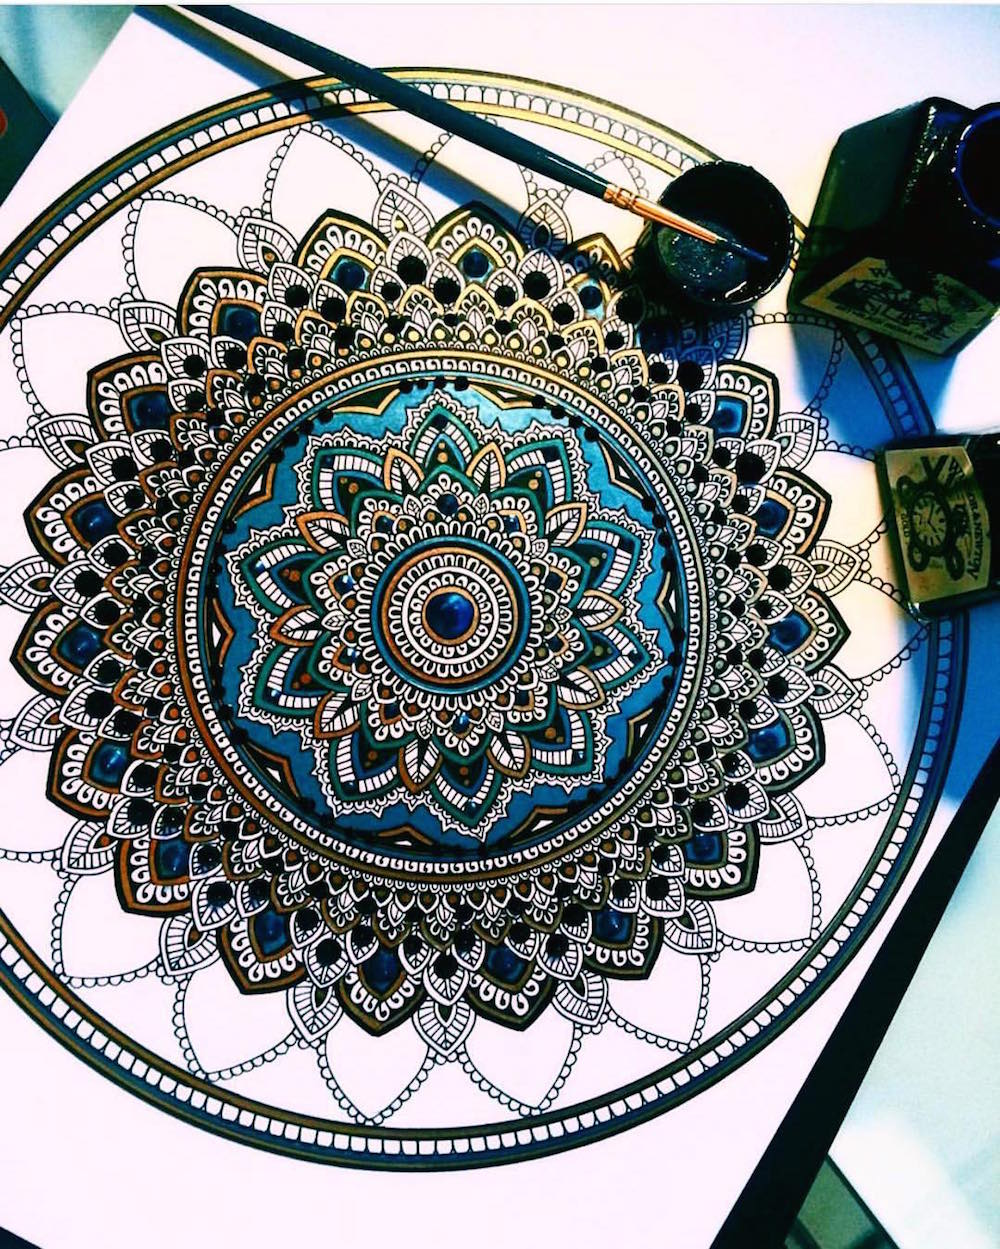 This artist brings hyper complex mandalas to life that look truly majestic - Mandala complexe ...